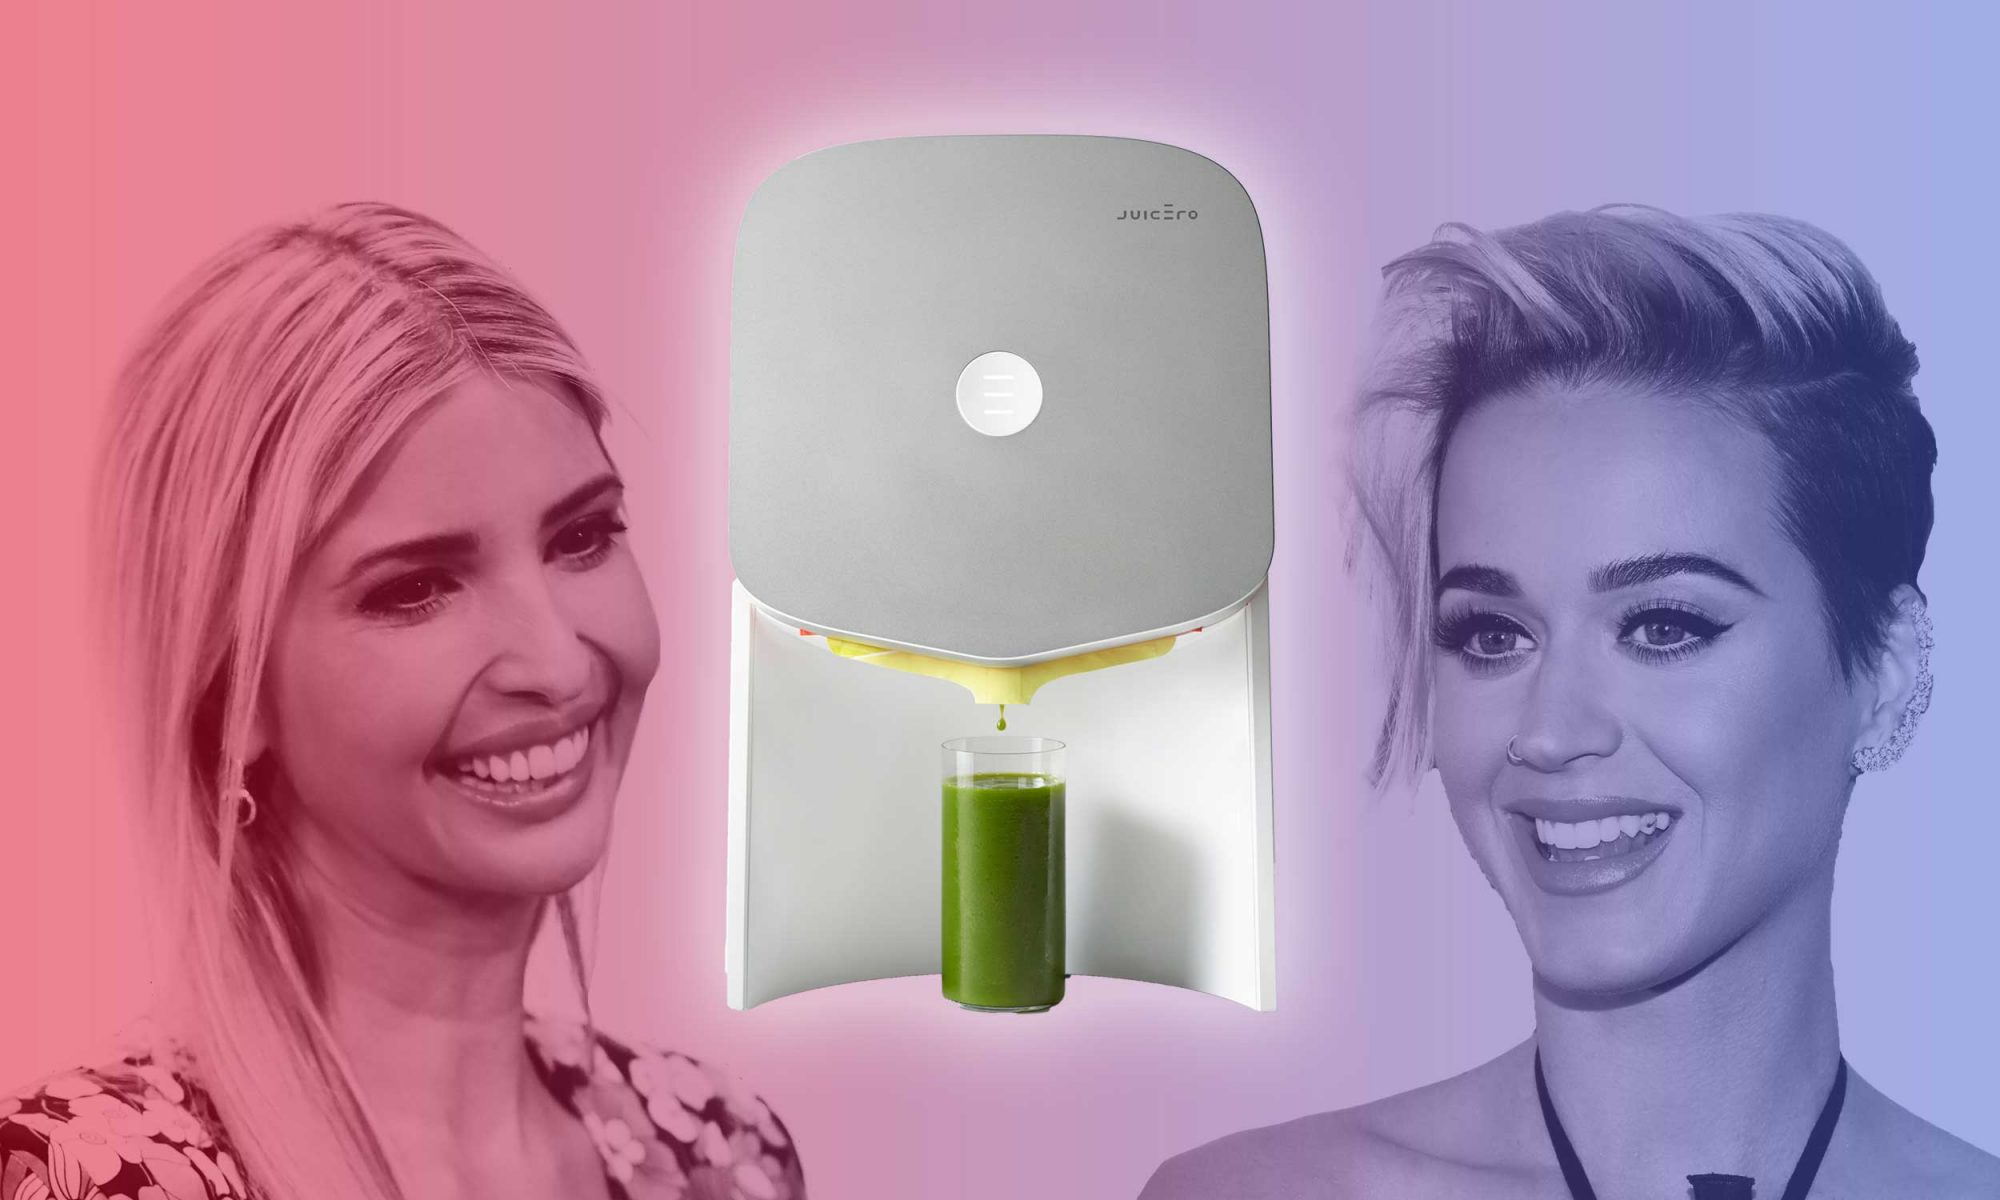 EC: The One Thing Ivanka Trump and Katy Perry Can Agree On Is This $400 Juicer